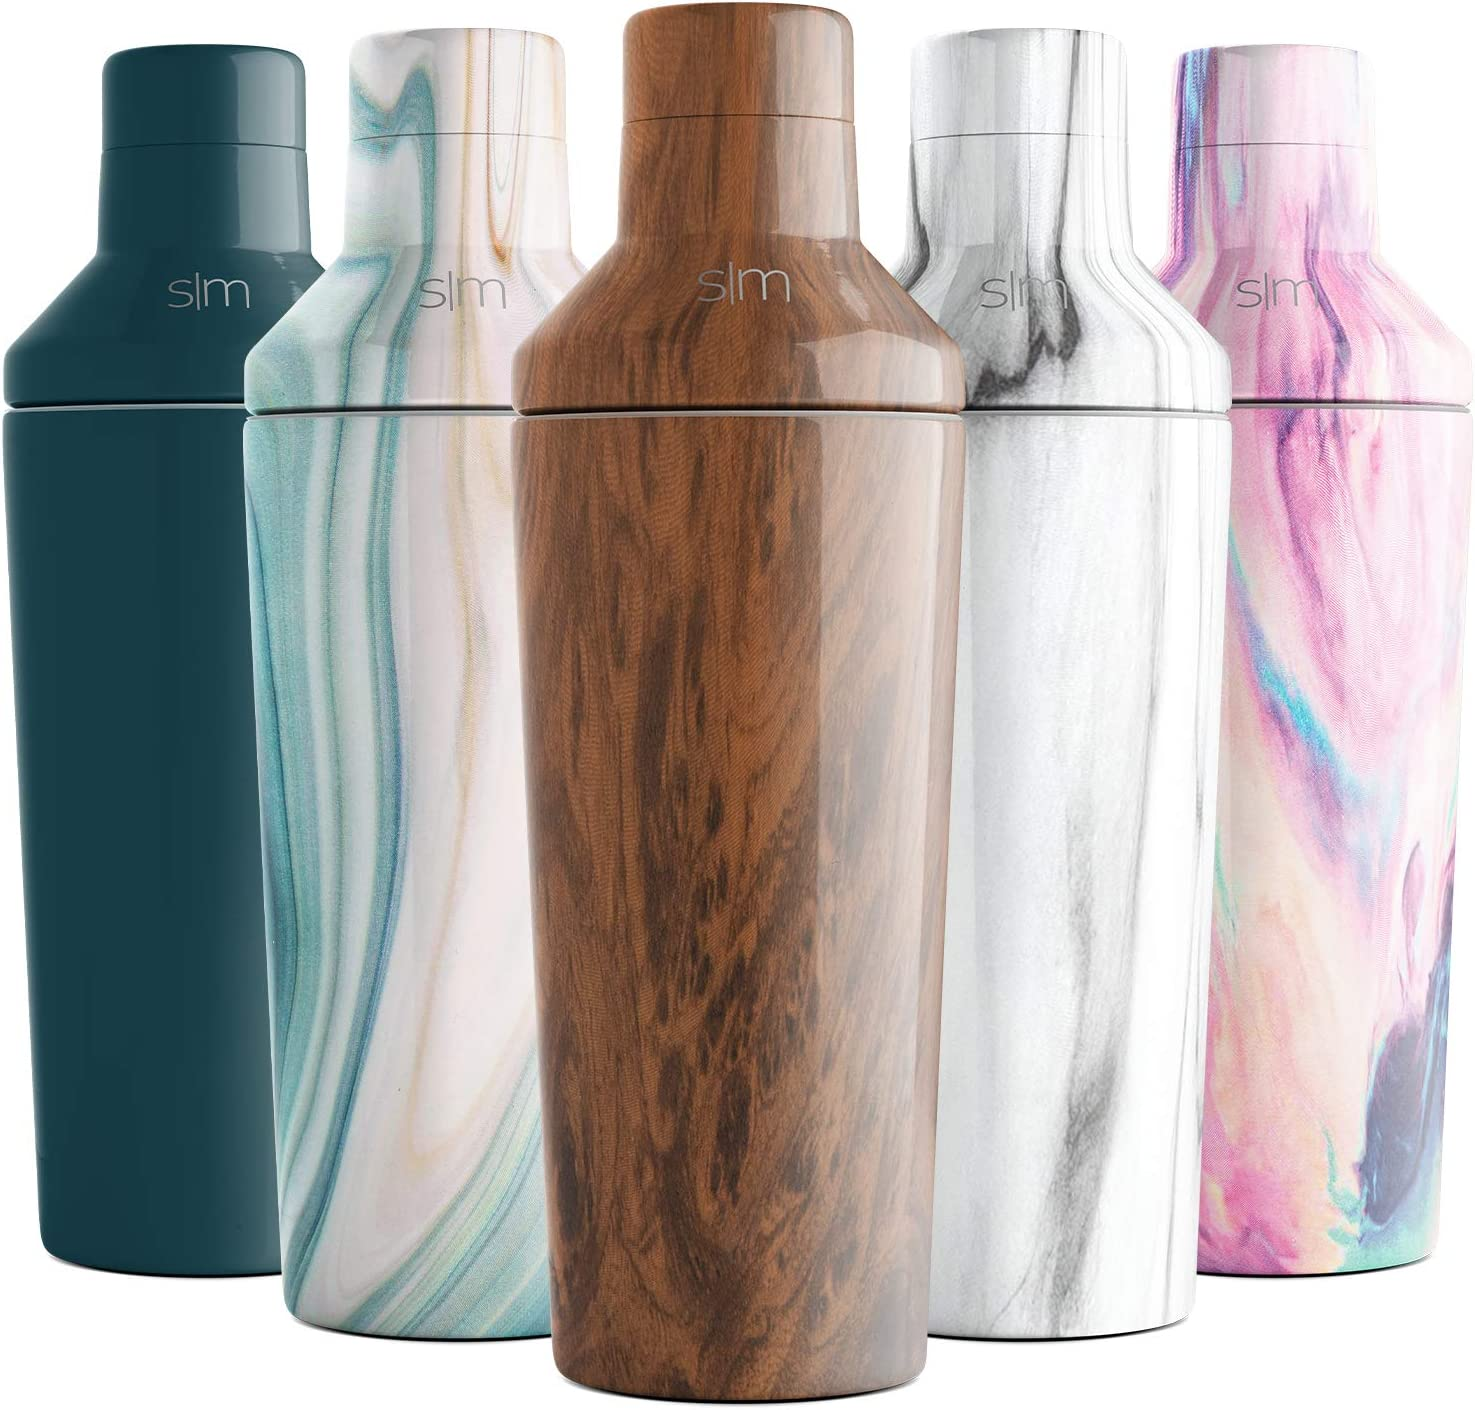 Simple Modern 20oz Cocktail Martini Shaker with Jigger Lid - Vacuum Insulated Boston Stainless Steel Tumbler - Bar Drink Mixer Gift Wood Grain